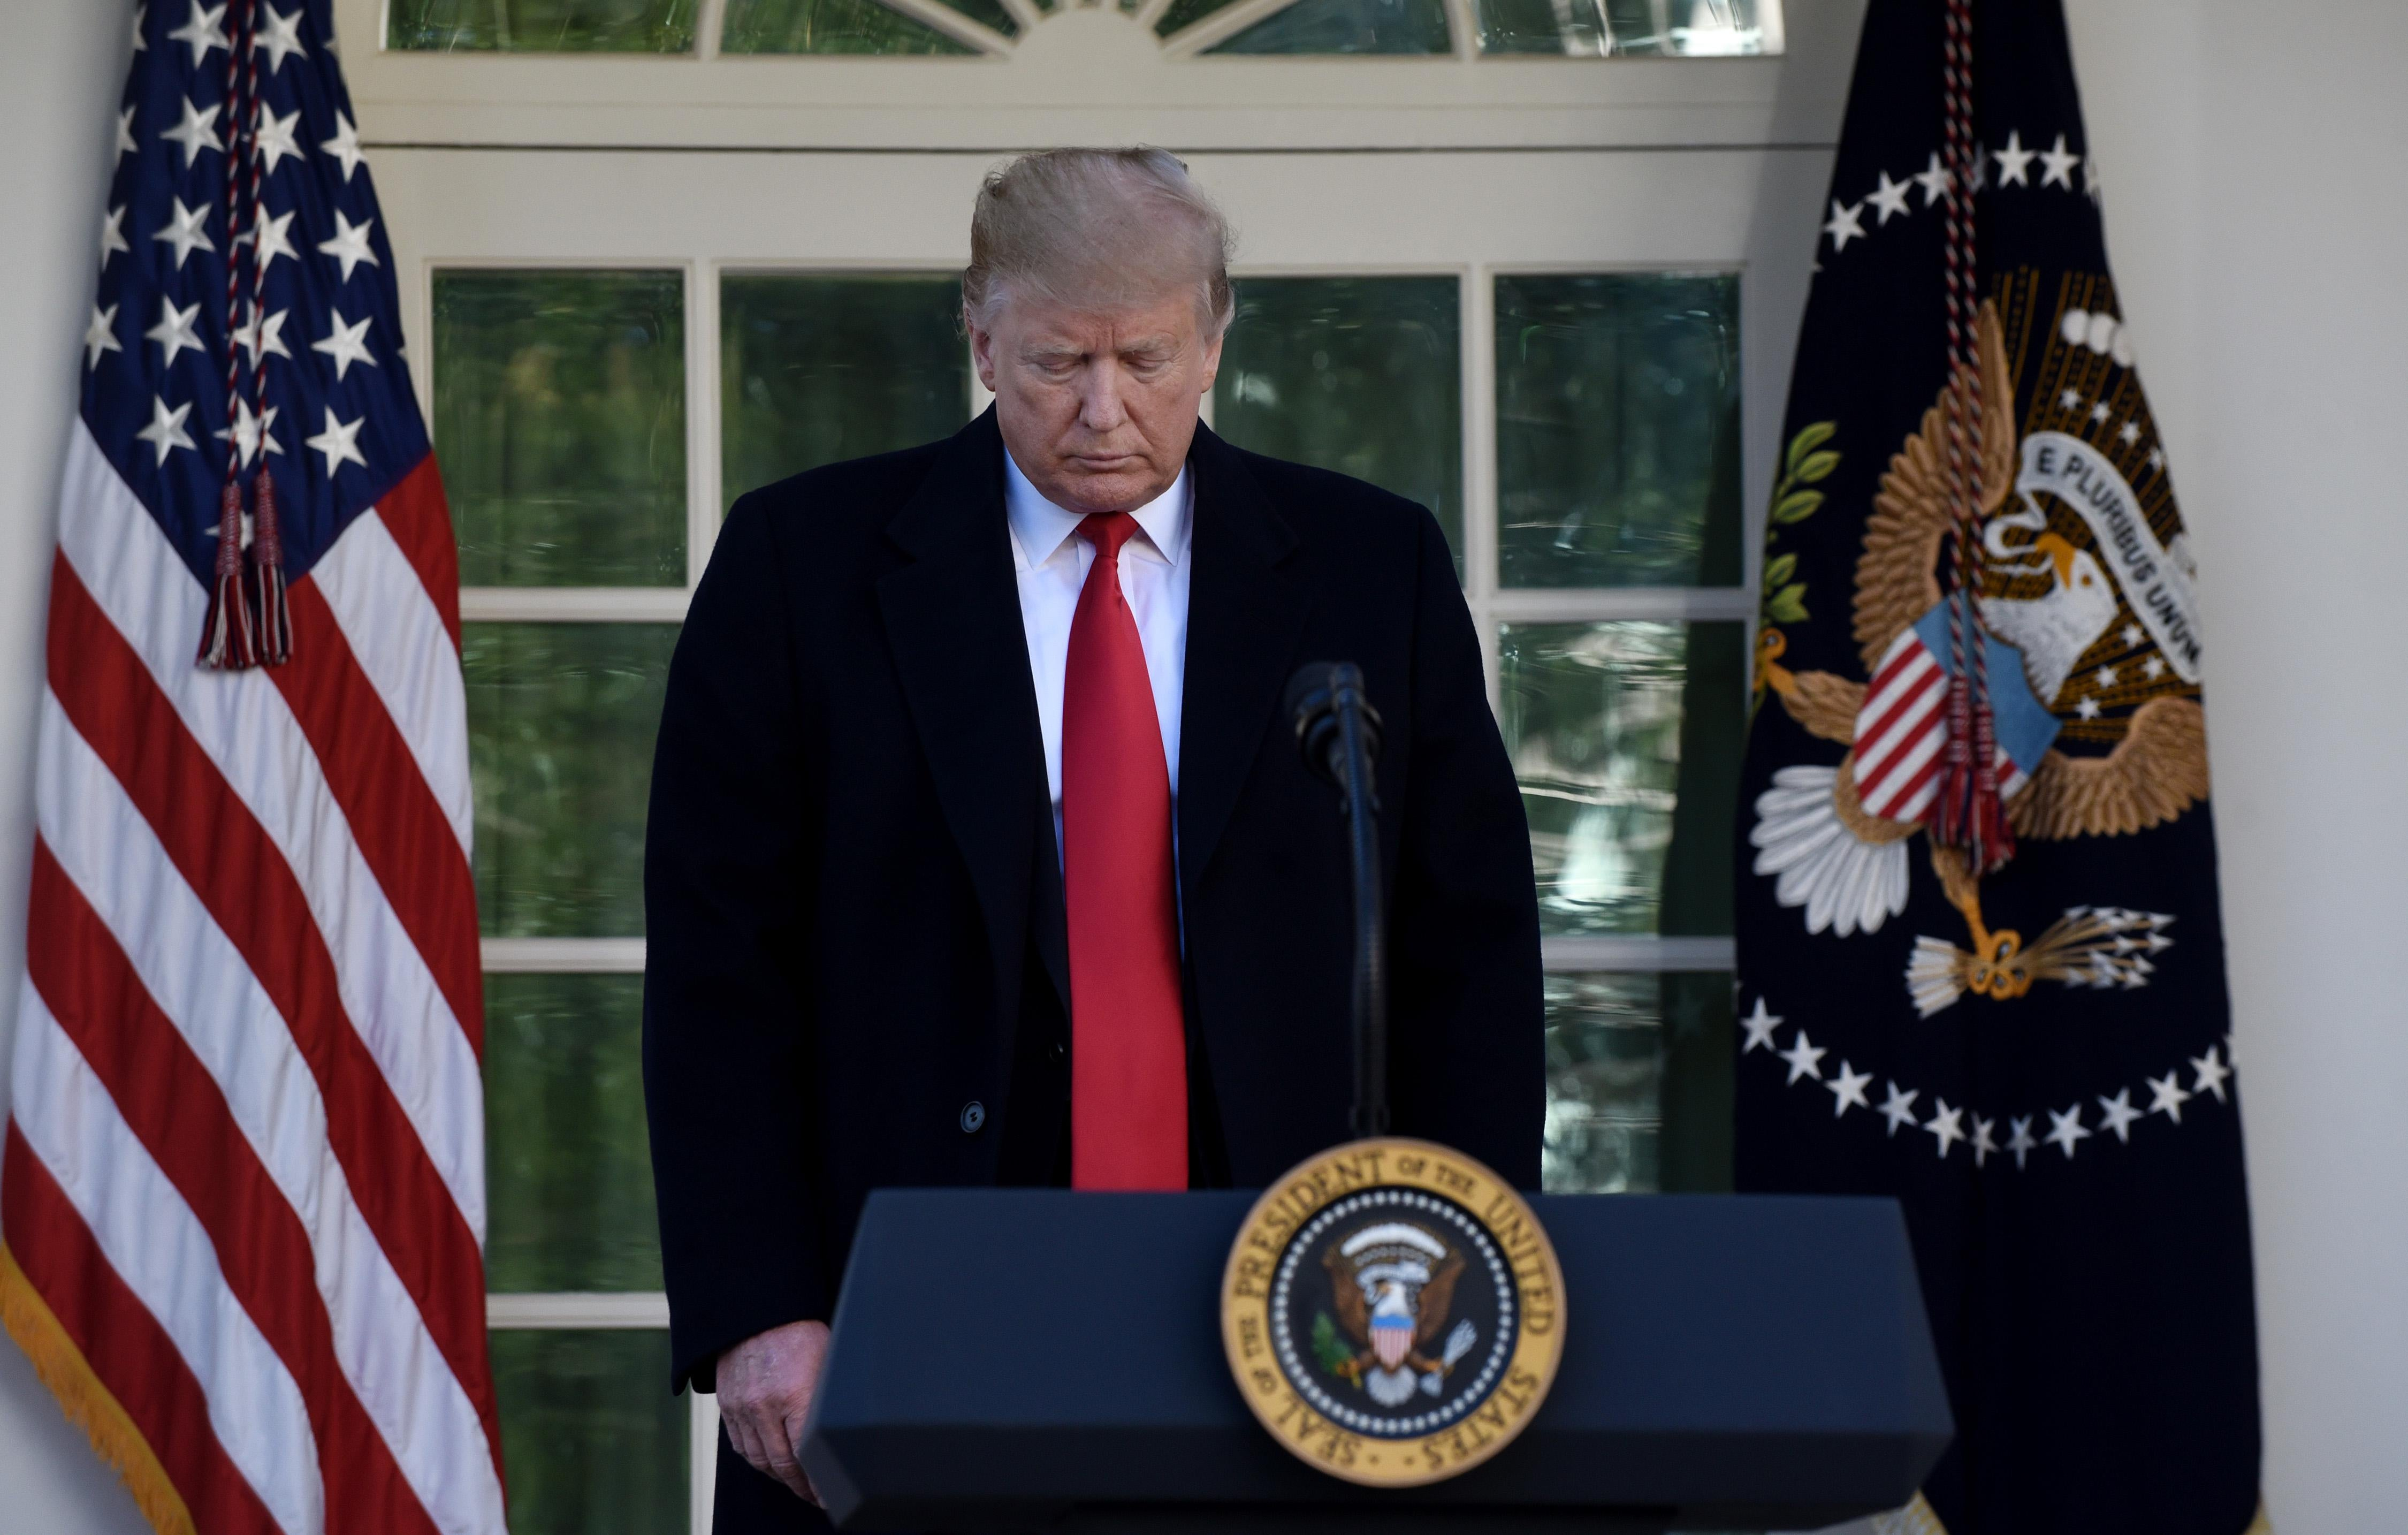 President Donald Trump makes a statement announcing that a deal has been reached to reopen the government through Feb. 15 during an event in the Rose Garden of the White House on January 25, 2019.